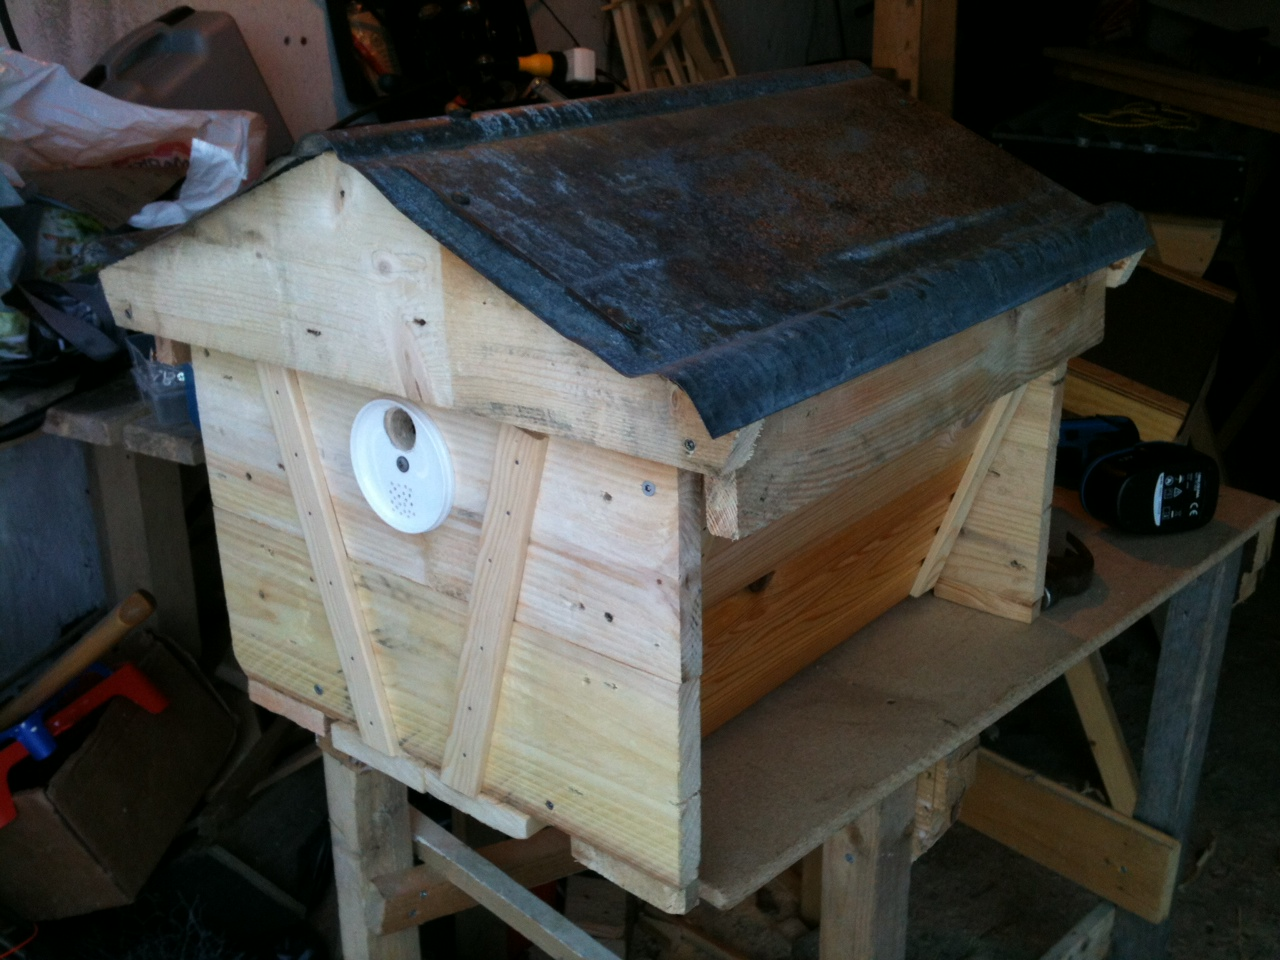 Exceptionnel Bait/Nucleus Top Bar Hive Finished